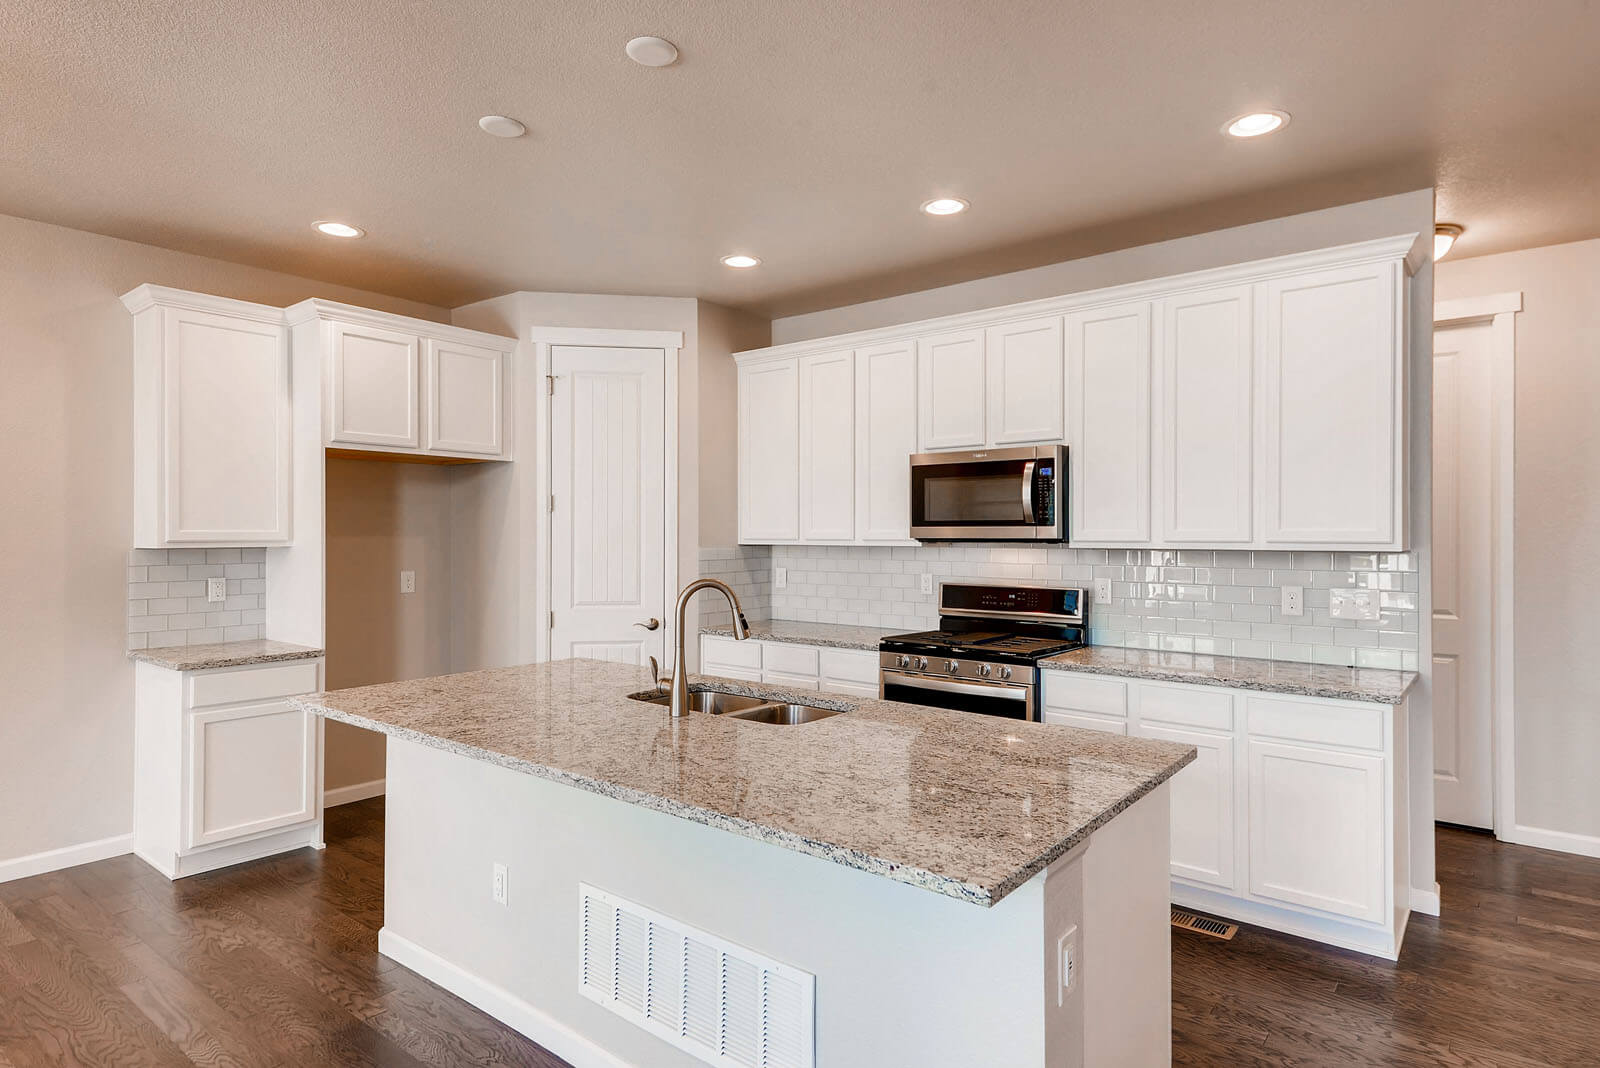 New Denver Single Family Home Quick Possession Ponderosa in Lincoln Creek, located at 11890 Barrentine Loop, Parker Built By Cardel Homes Denver